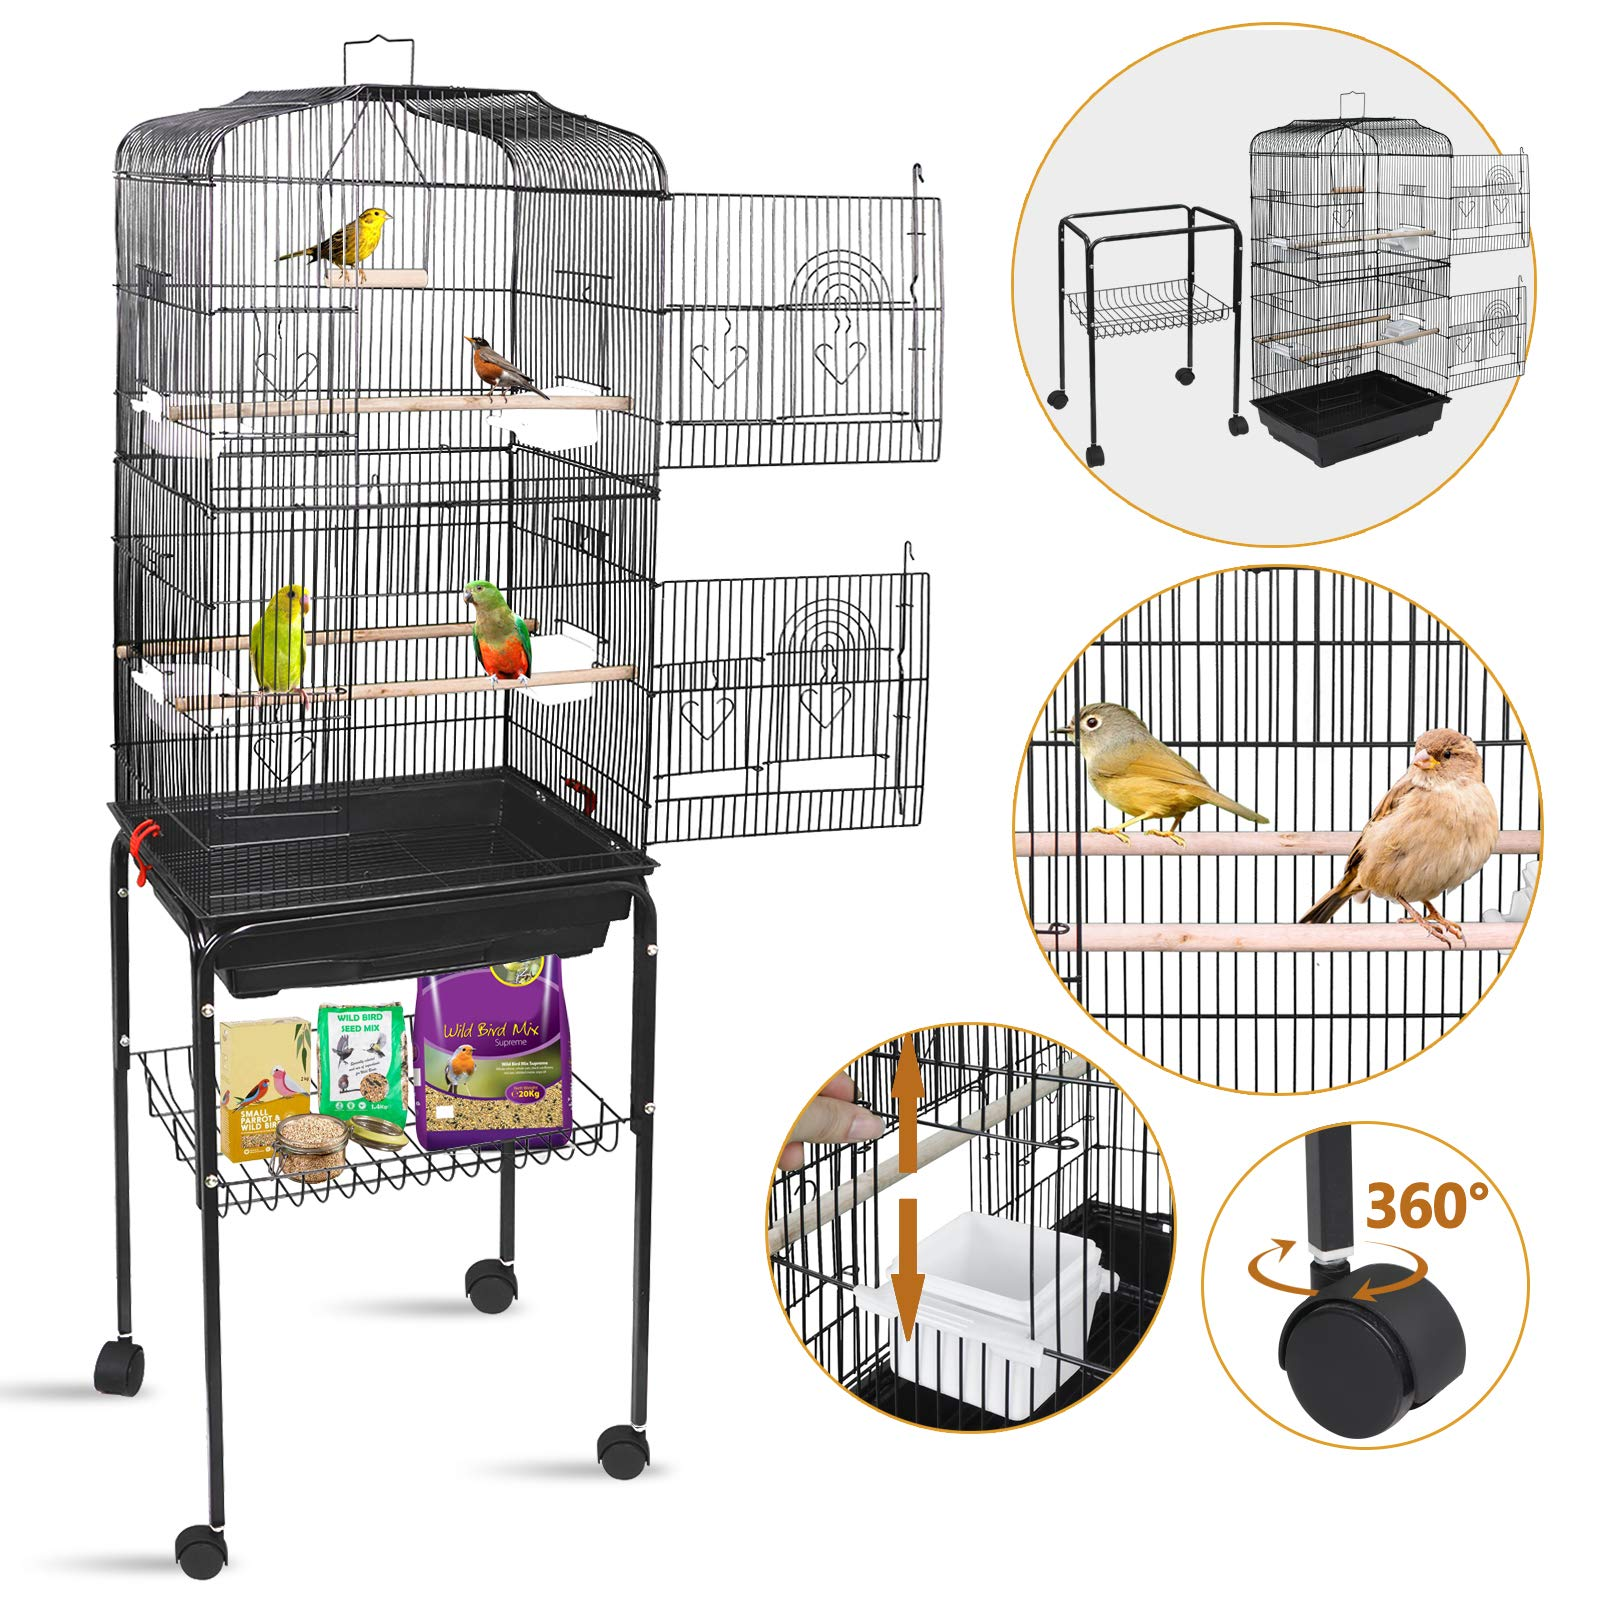 SUPER DEAL 59.3''/53'' Rolling Bird Cage Large Wrought Iron Cage for Cockatiel Sun Conure Parakeet Finch Budgie Lovebird Canary Medium Pet House with Rolling Stand & Storage Shelf (59.3'') by SUPER DEAL